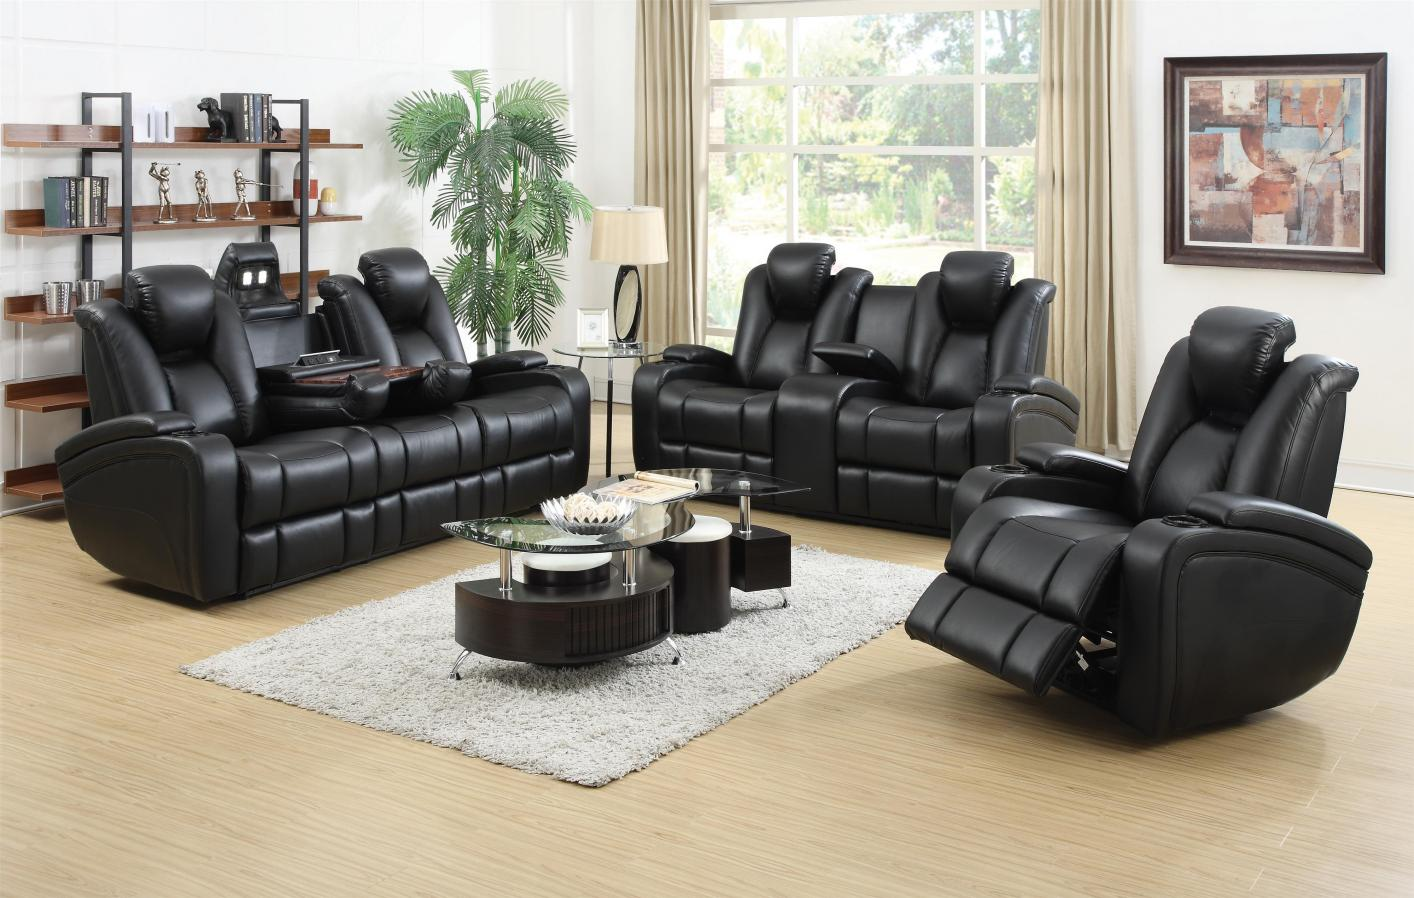 ... Black Leather Power Reclining Sofa & Black Leather Power Reclining Sofa - Steal-A-Sofa Furniture Outlet ... islam-shia.org